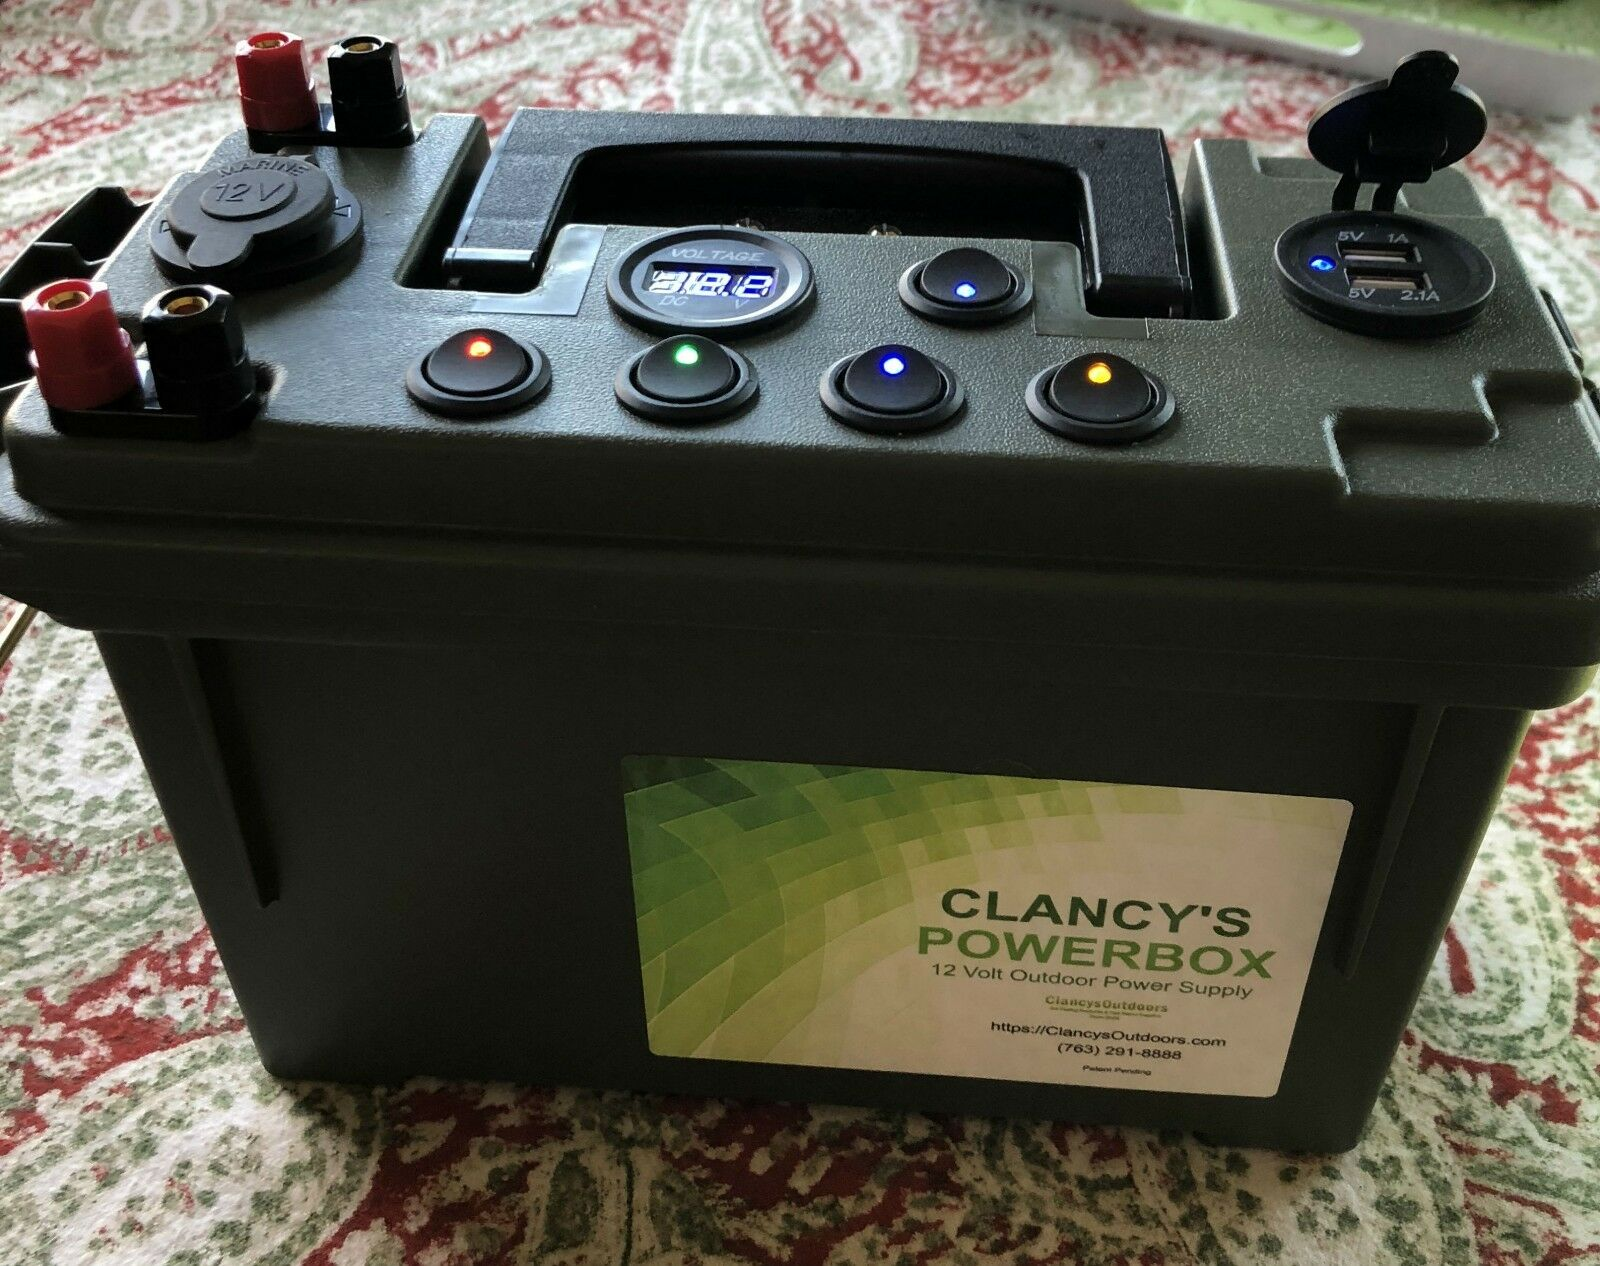 Clancy's PowerBox  12 volt power supply for ice fishing camping hunting kayaking  various sizes